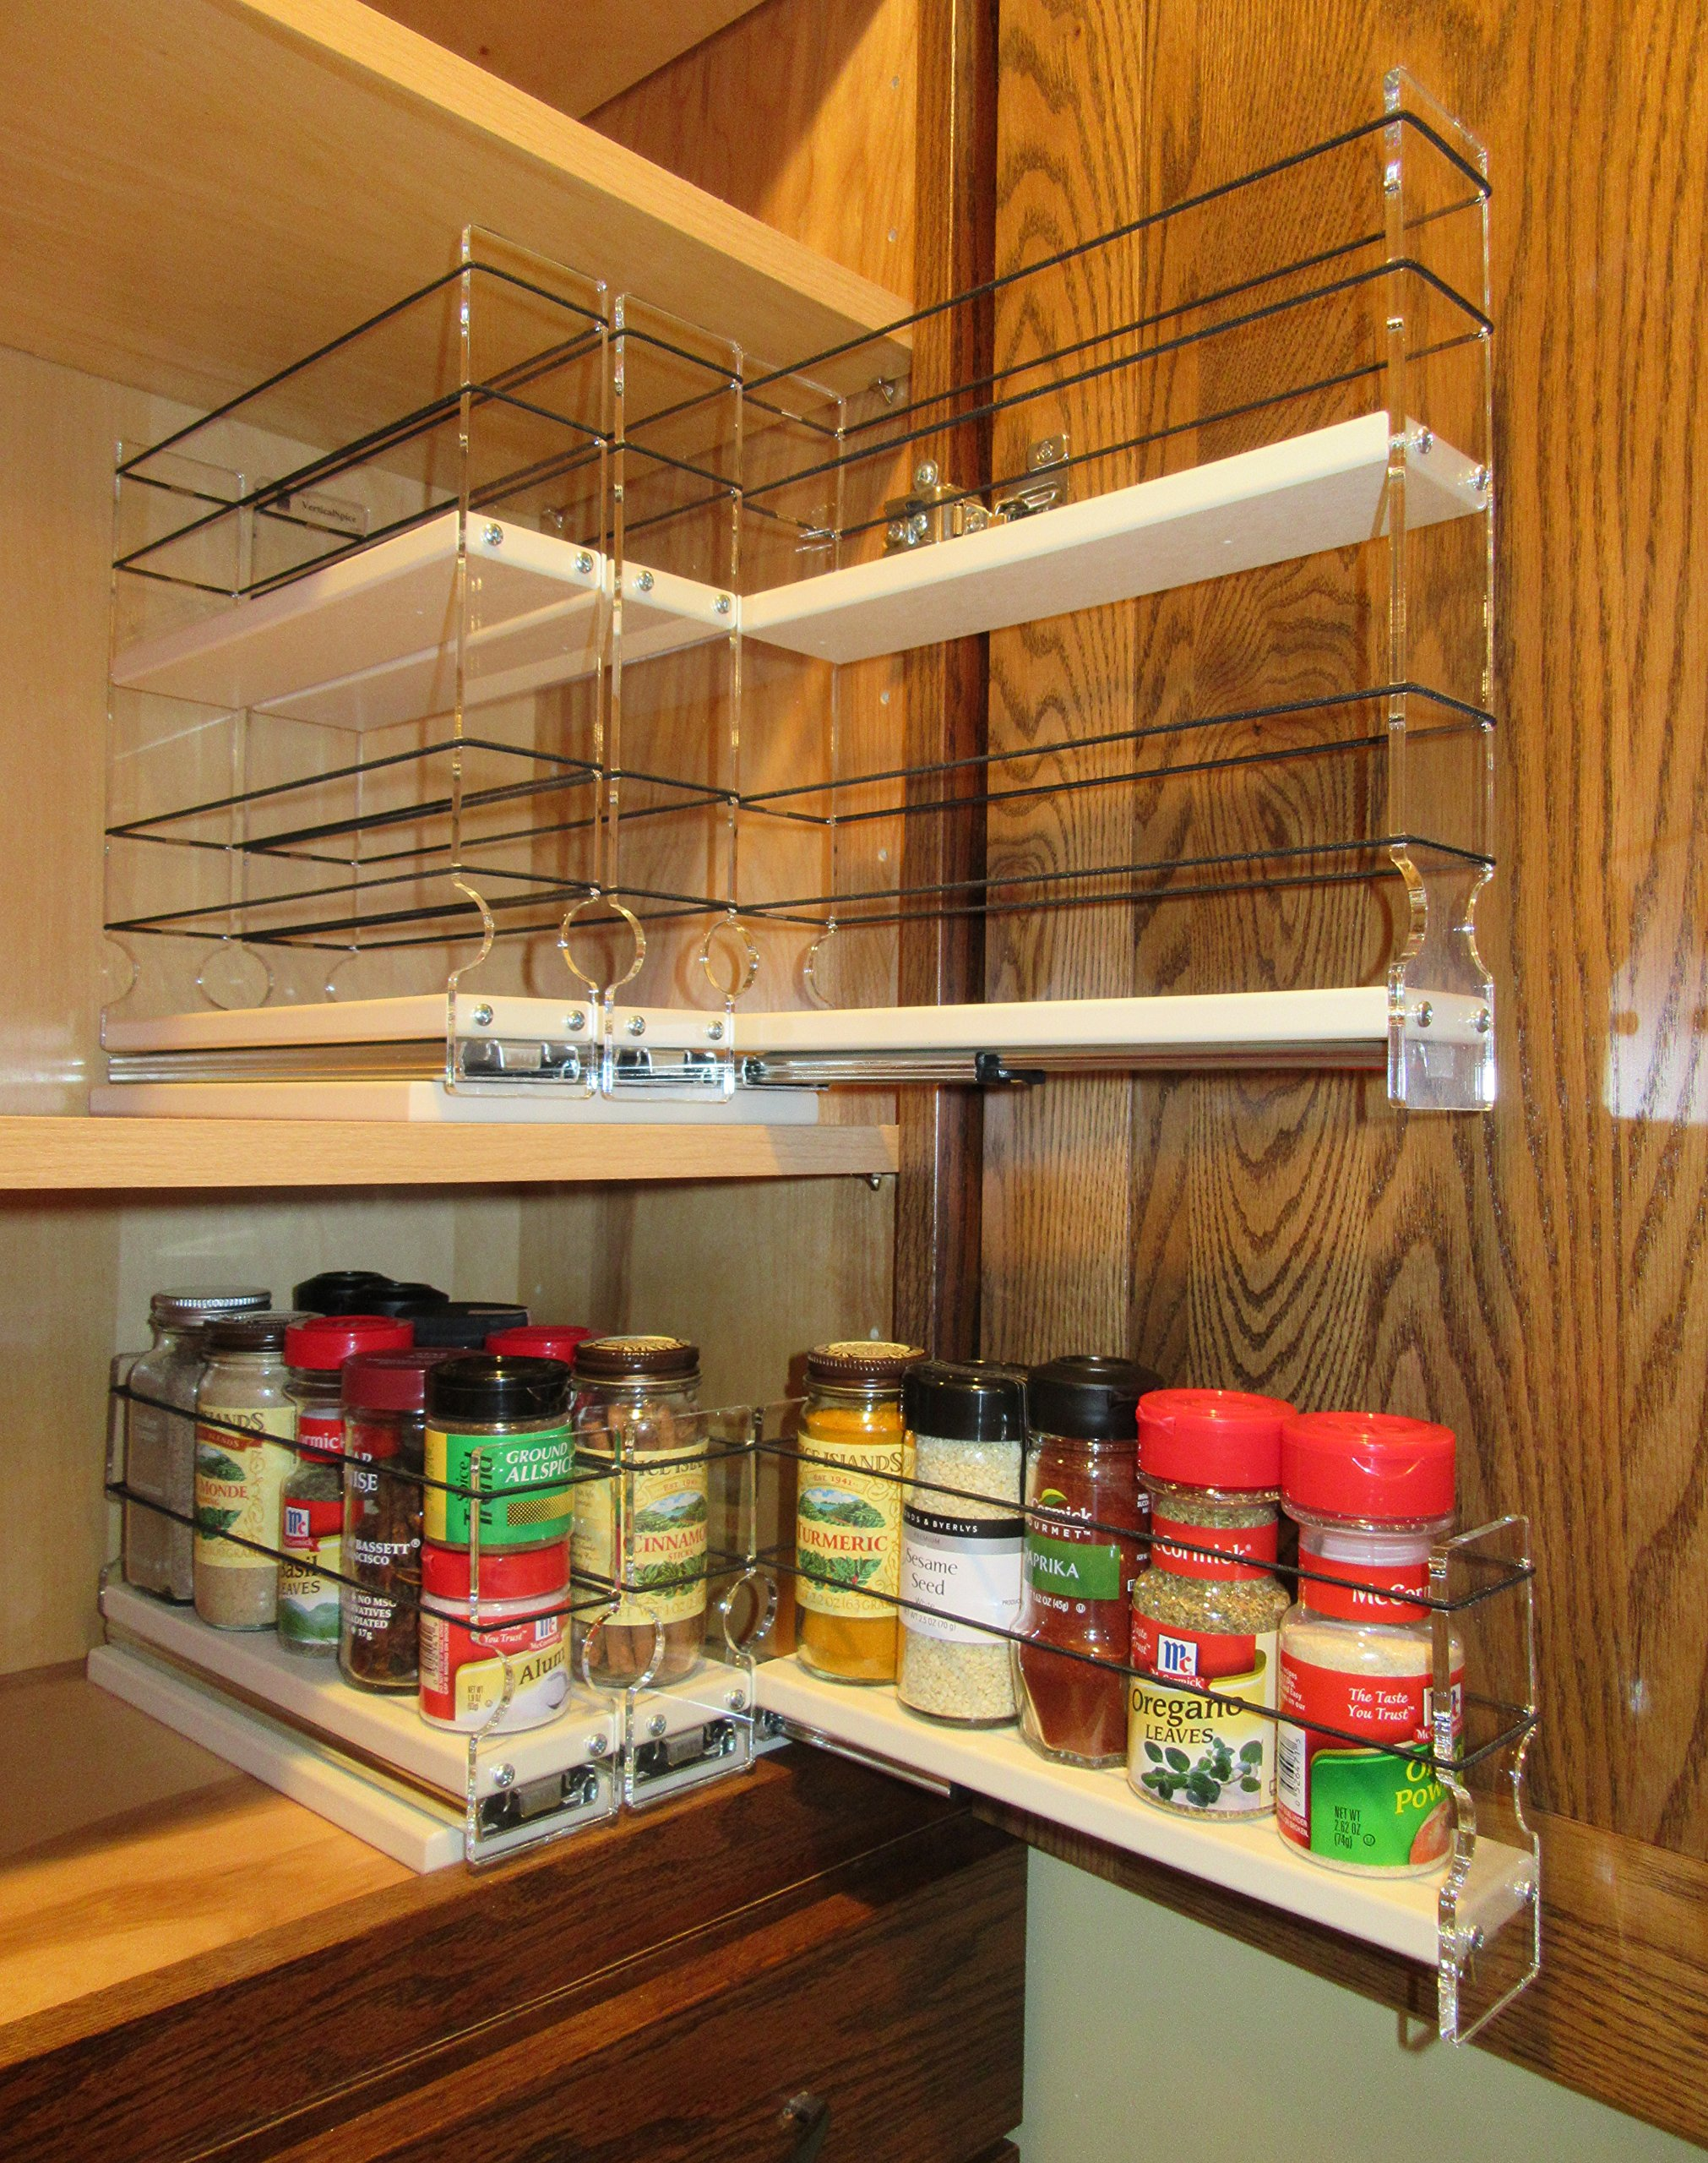 Vertical Spice - 222x1x11 DC - Spice Rack w/3 Drawers - 15 Capacity - New and Unique - Easy Access - 222 x 1 x 11 by Vertical Spice